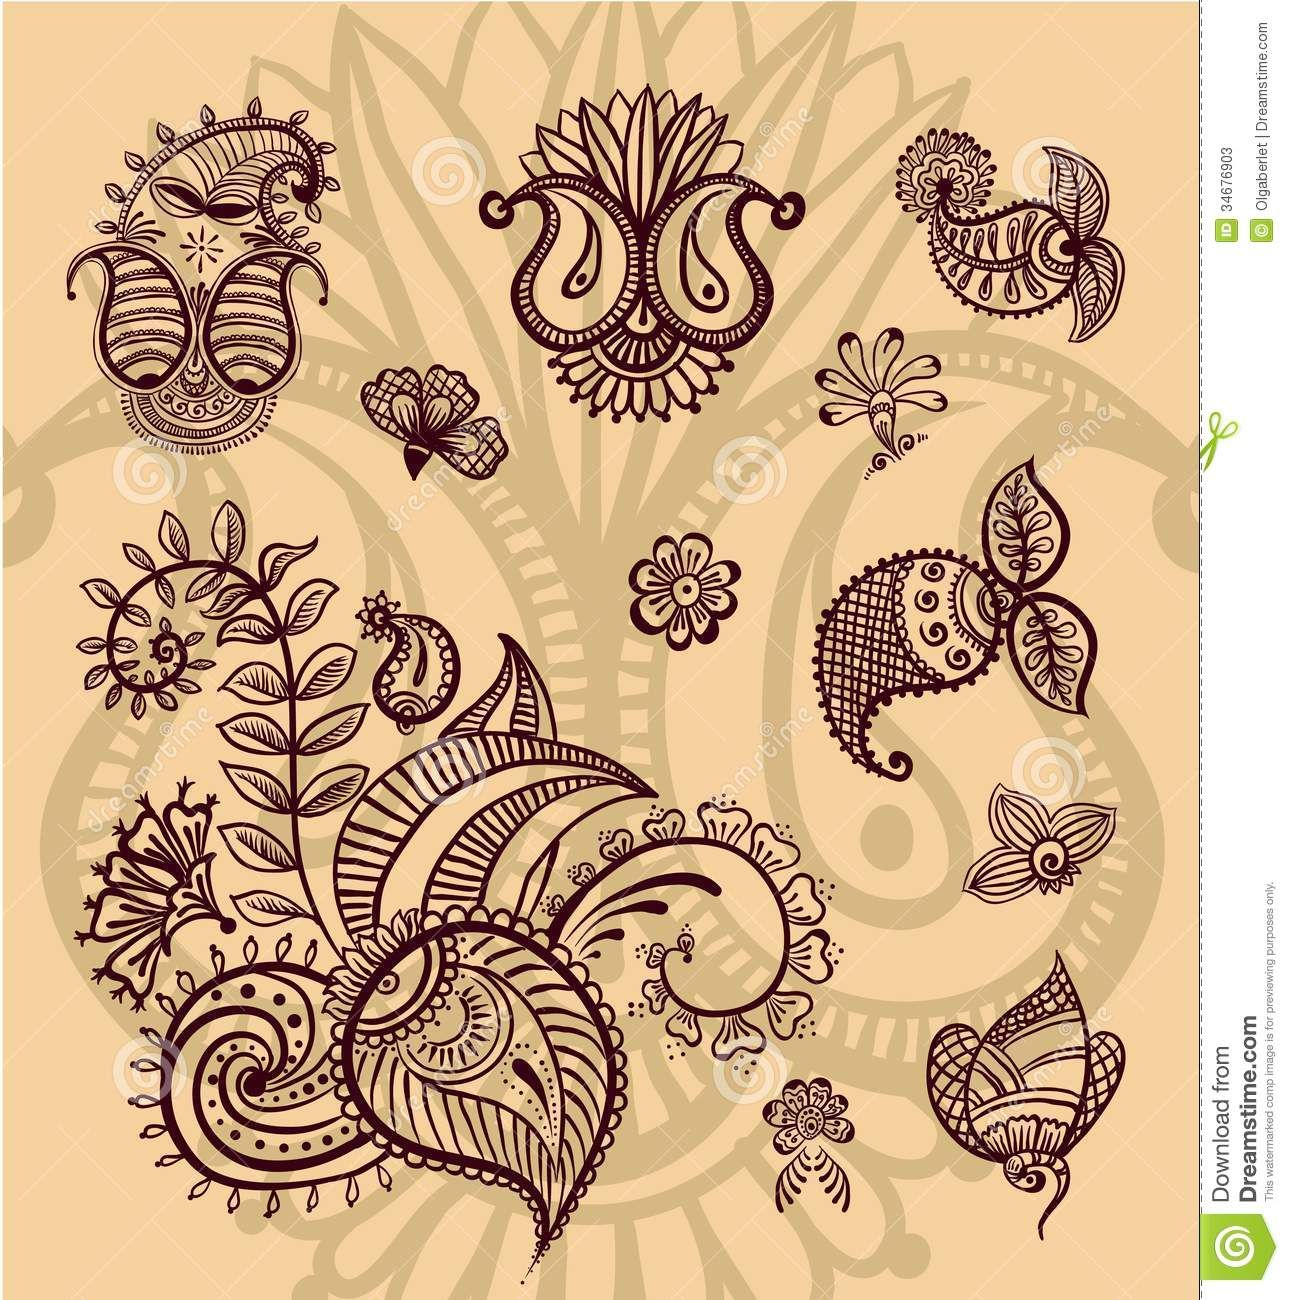 Paisley Flowers Henna Tattoo Design: Stock Photos: Floral Paisley Design